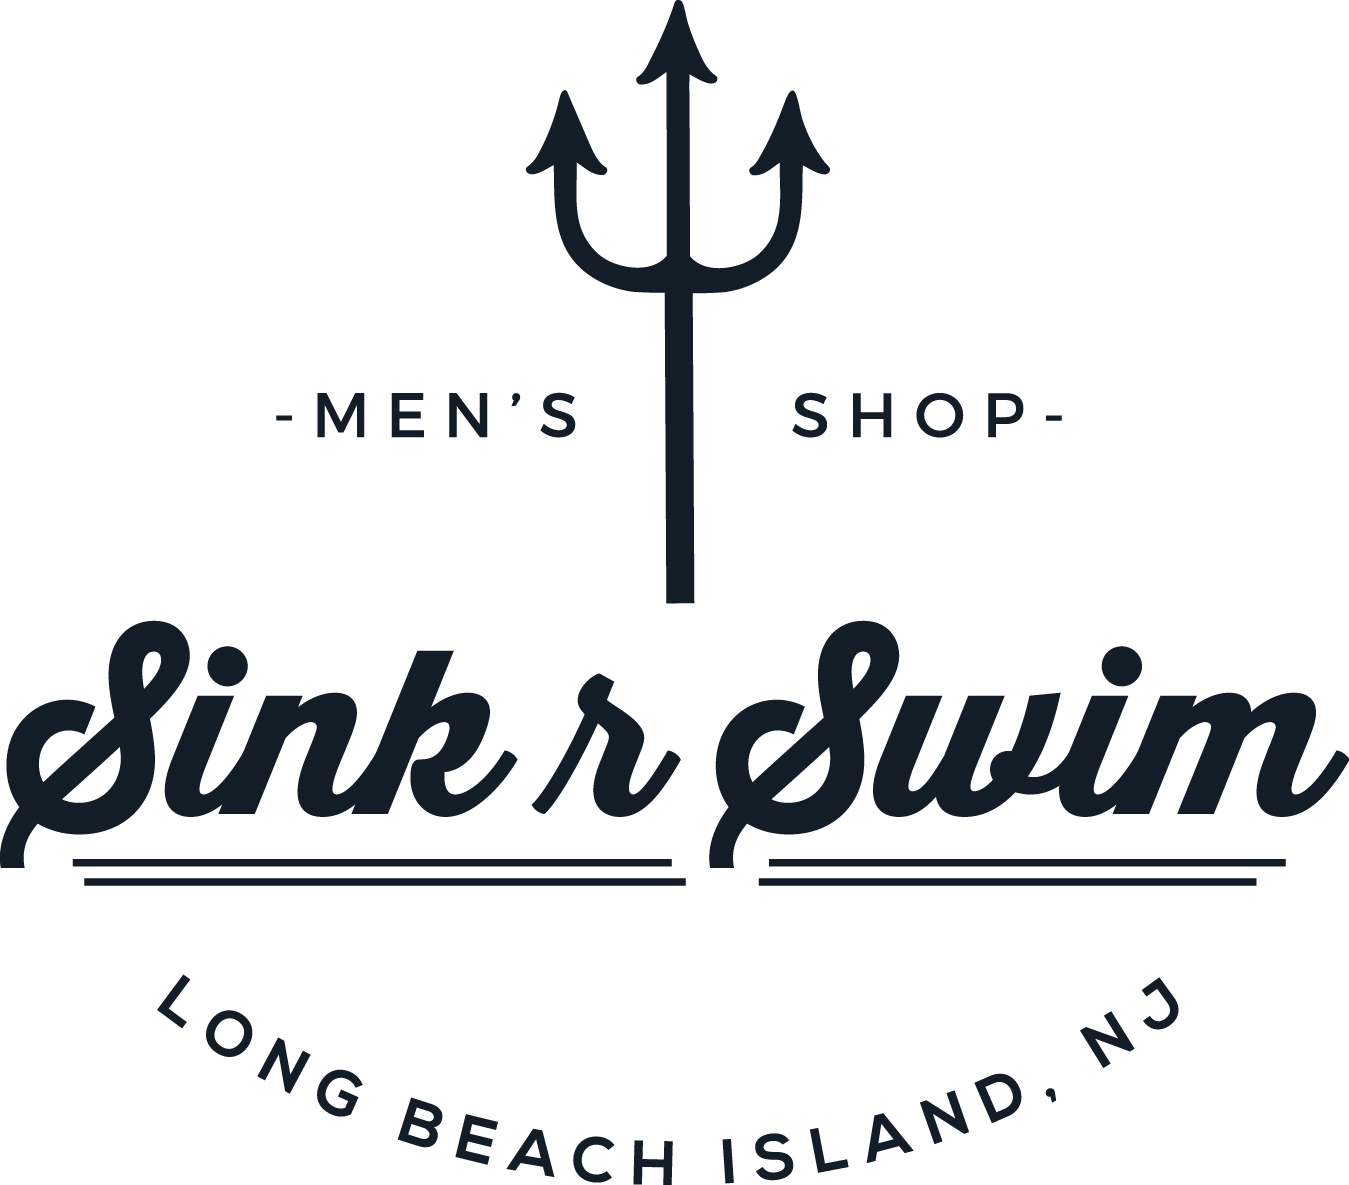 Sink r Swim - 11205 Long Beach Blvd. Haven Beach NJ 08008You can find Sink r Swim right next to Blue Water Cafe on the corner of East South Carolina AvenueReopening November 23 - Weekends Through December